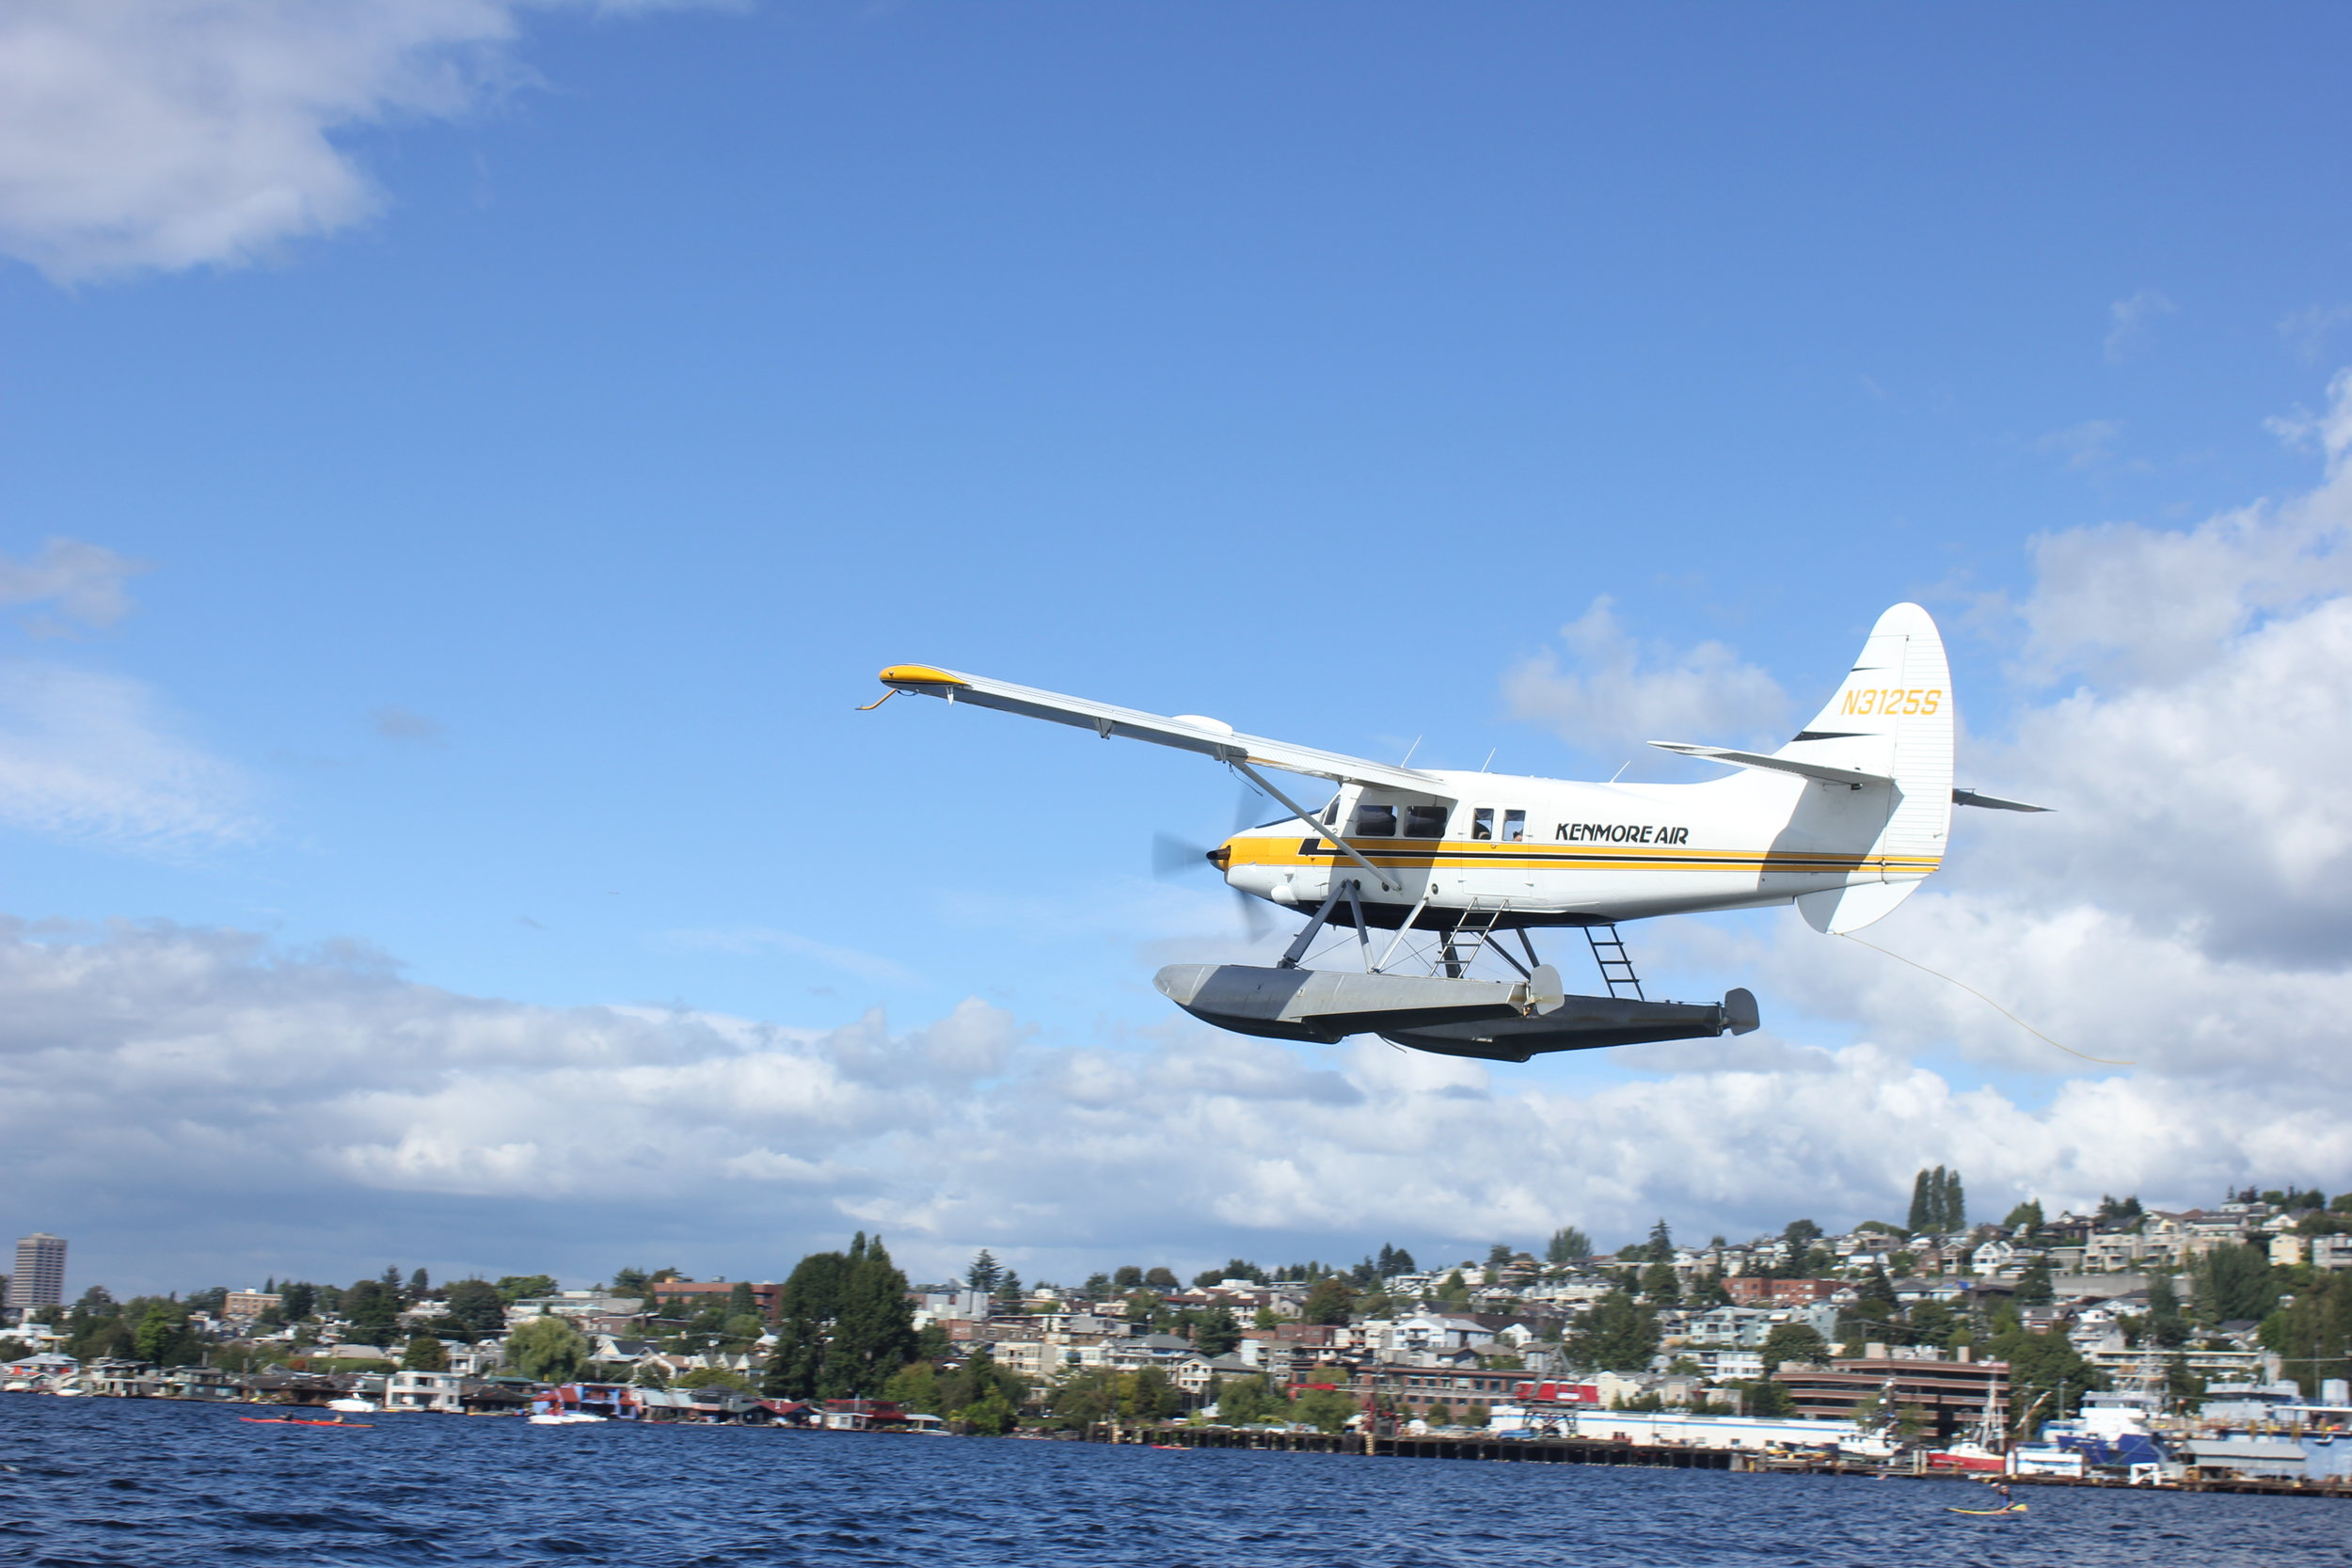 Kenmore Air seaplane comes in for a landing on Lake Union.